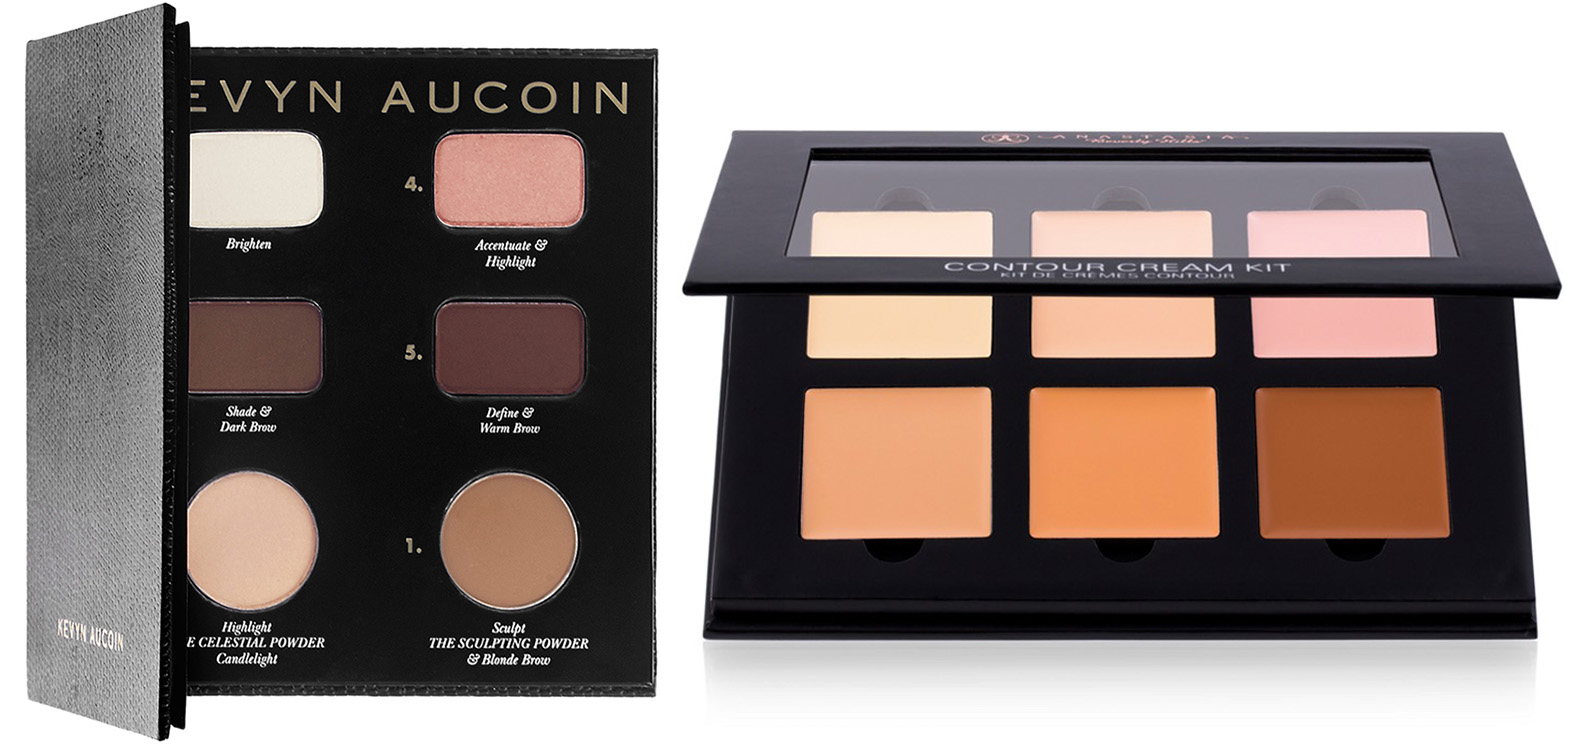 Kevin Aucoin and Anastasia Beverly Hills SS15 Contouring